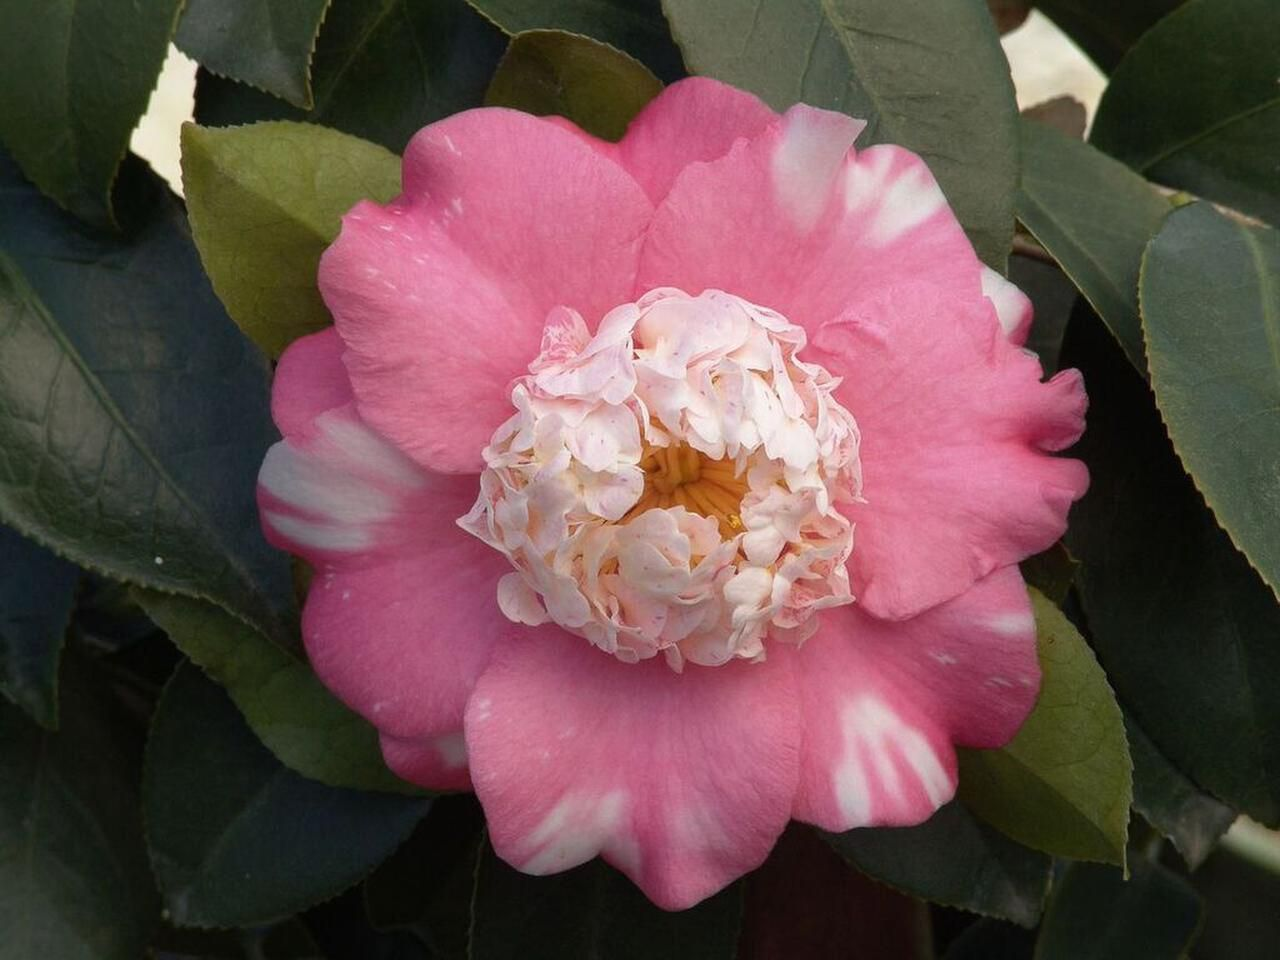 The variegated Camellia japonica 'Chandleri Elegans,' hardy in zones 8-10, produces the unusual so-called anemone form flowers. It will grow in a container or is useful in a hedge, woodland garden or border.